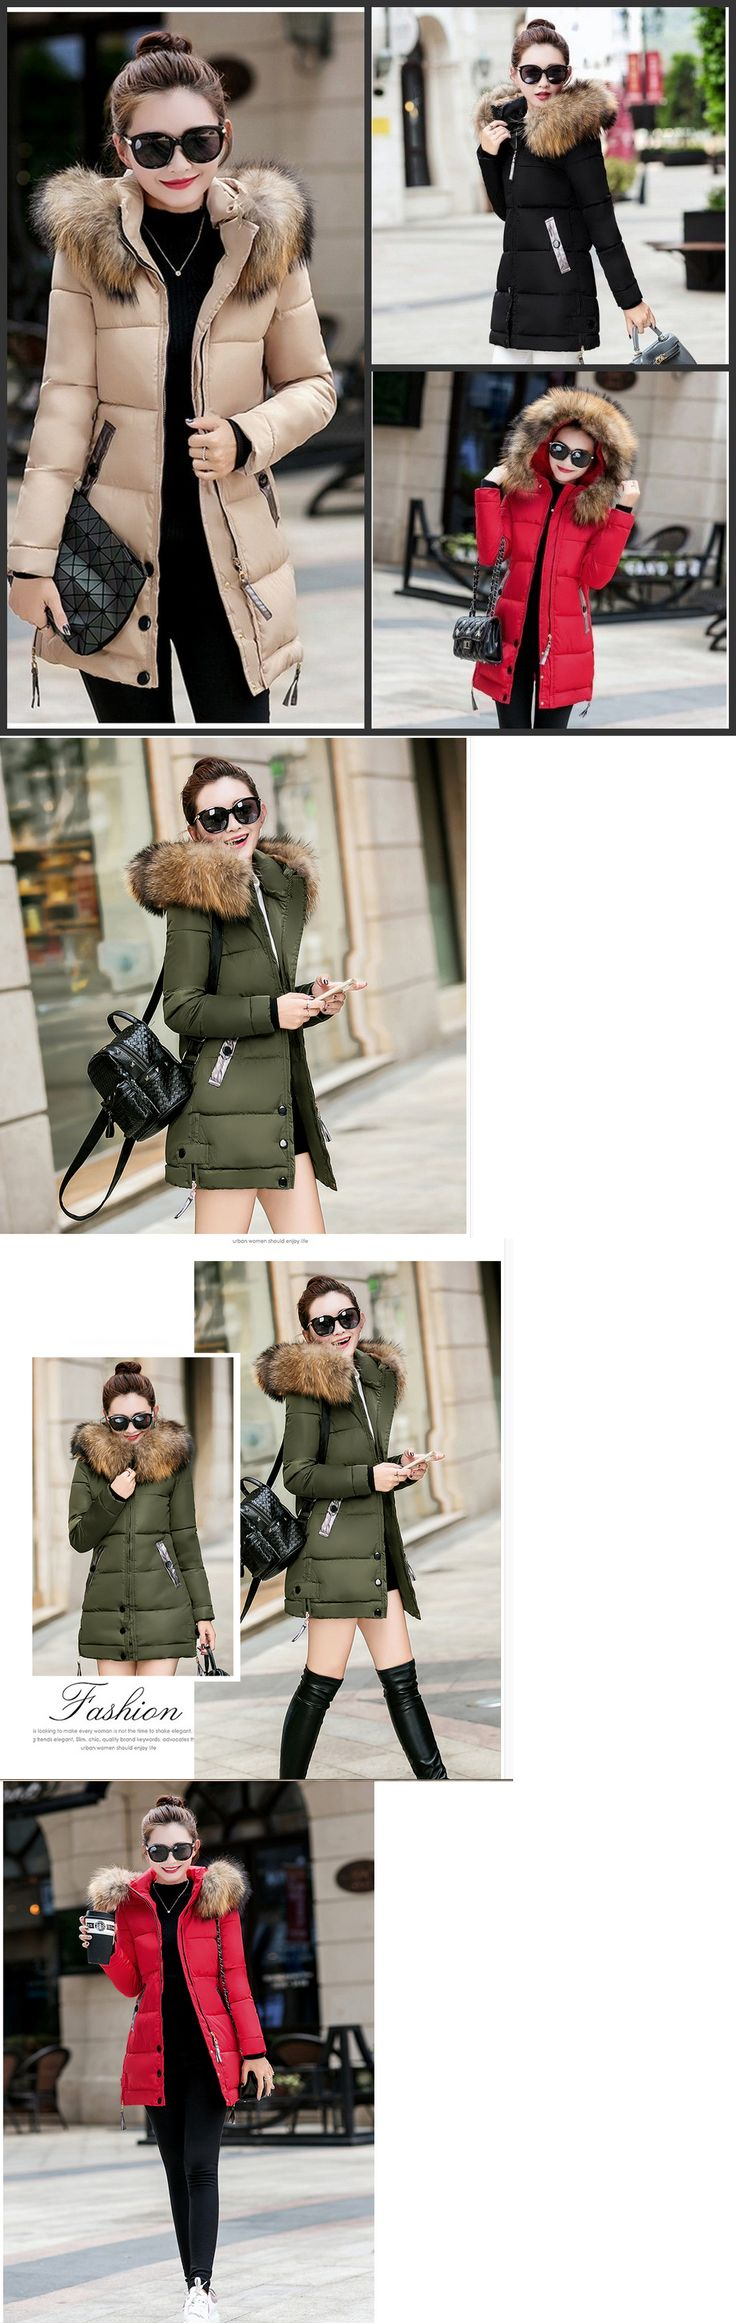 Coats and Jackets 63862: New Winter Women Jacket Long Down Jacket Padded Coat Ladies Slim Hooded Parka -> BUY IT NOW ONLY: $31.99 on eBay!